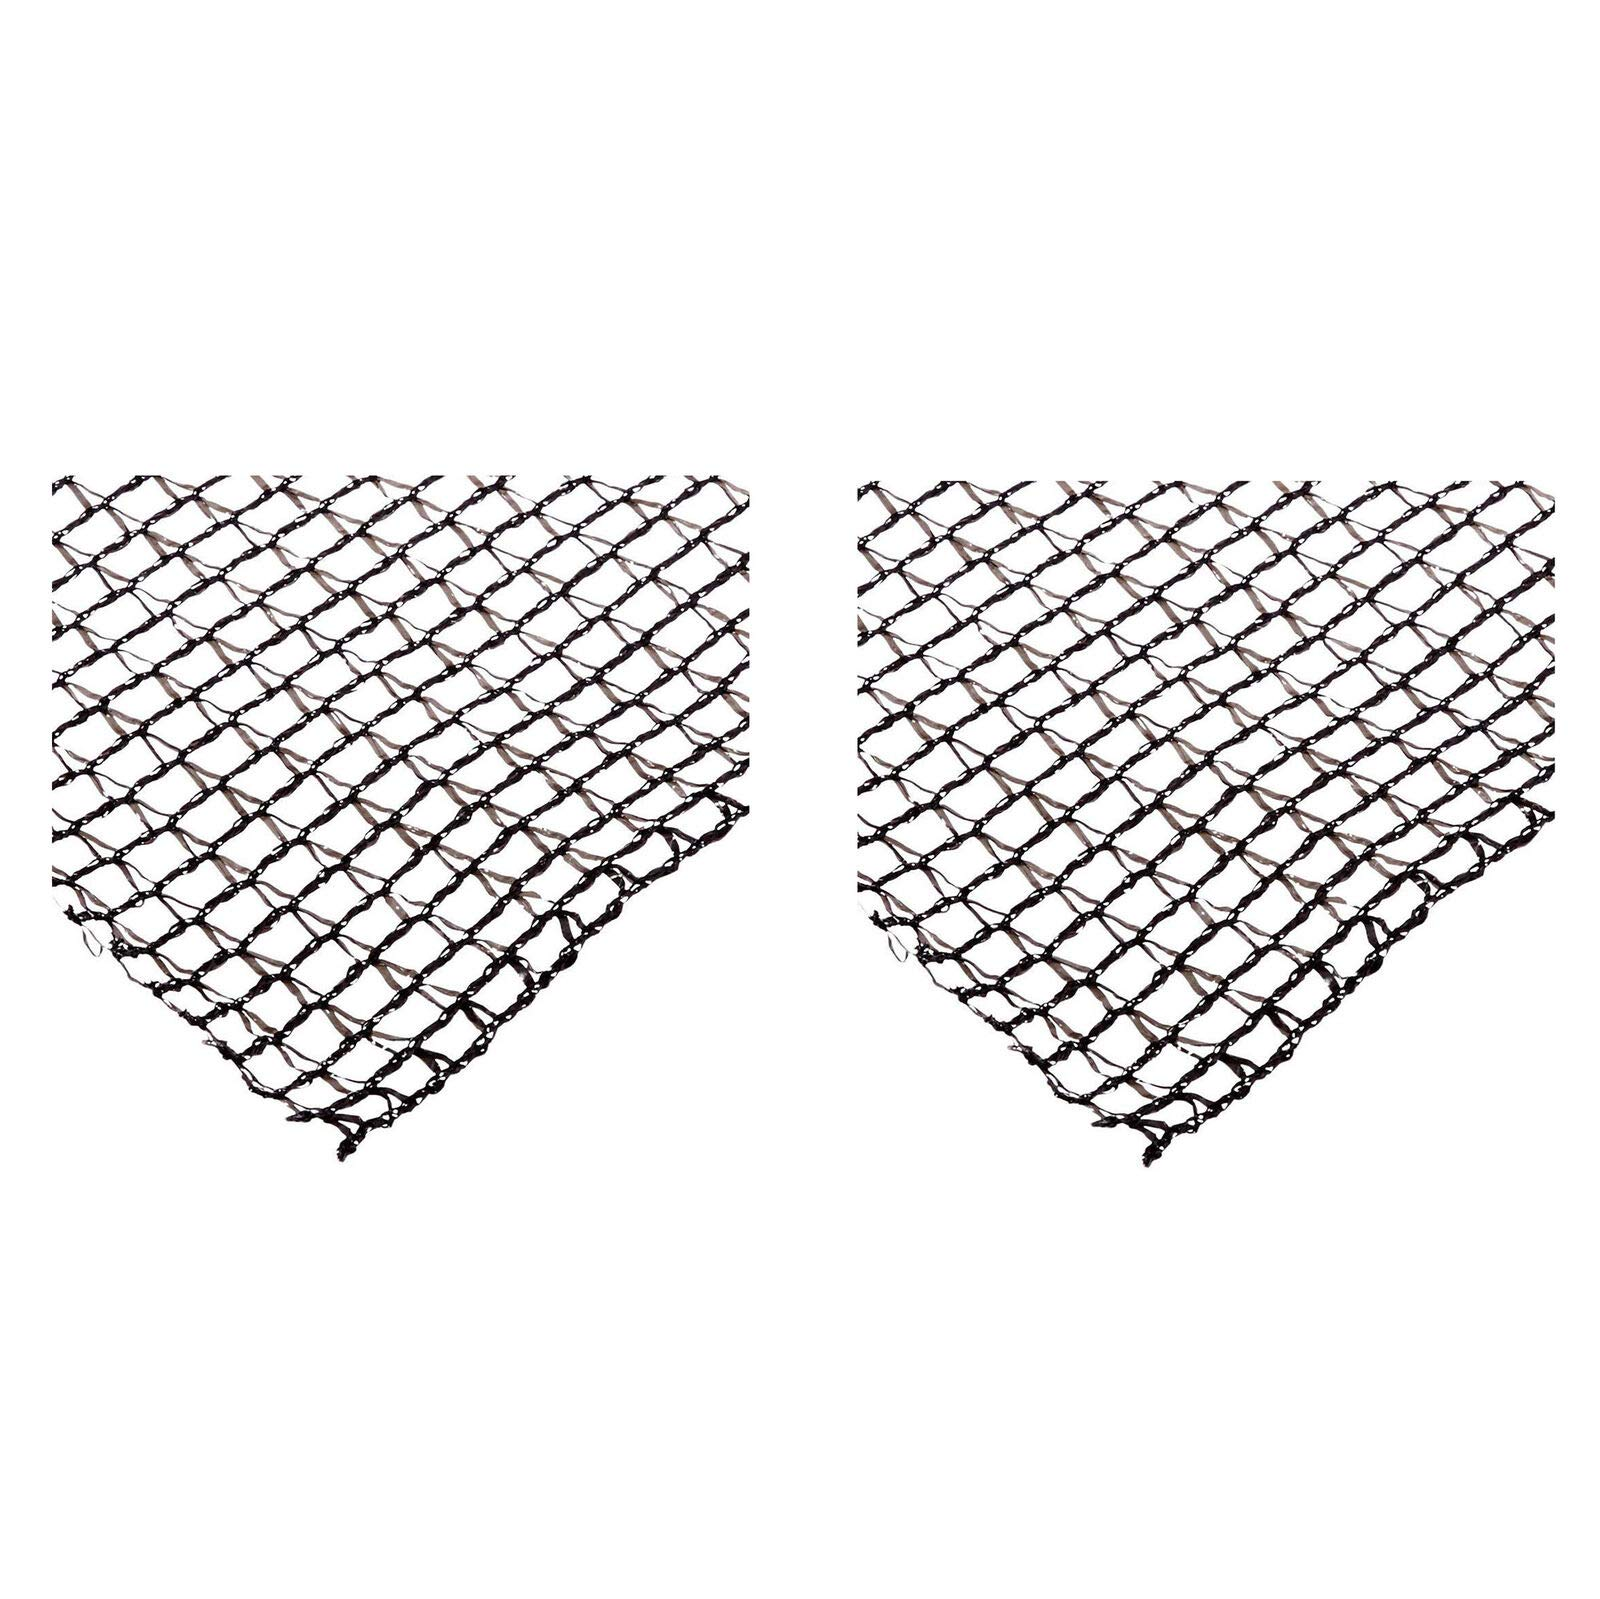 MRT SUPPLY Deluxe 12 x 20 Foot Heavy Duty Backyard Fish Pond Netting Cover (2 Pack) with Ebook